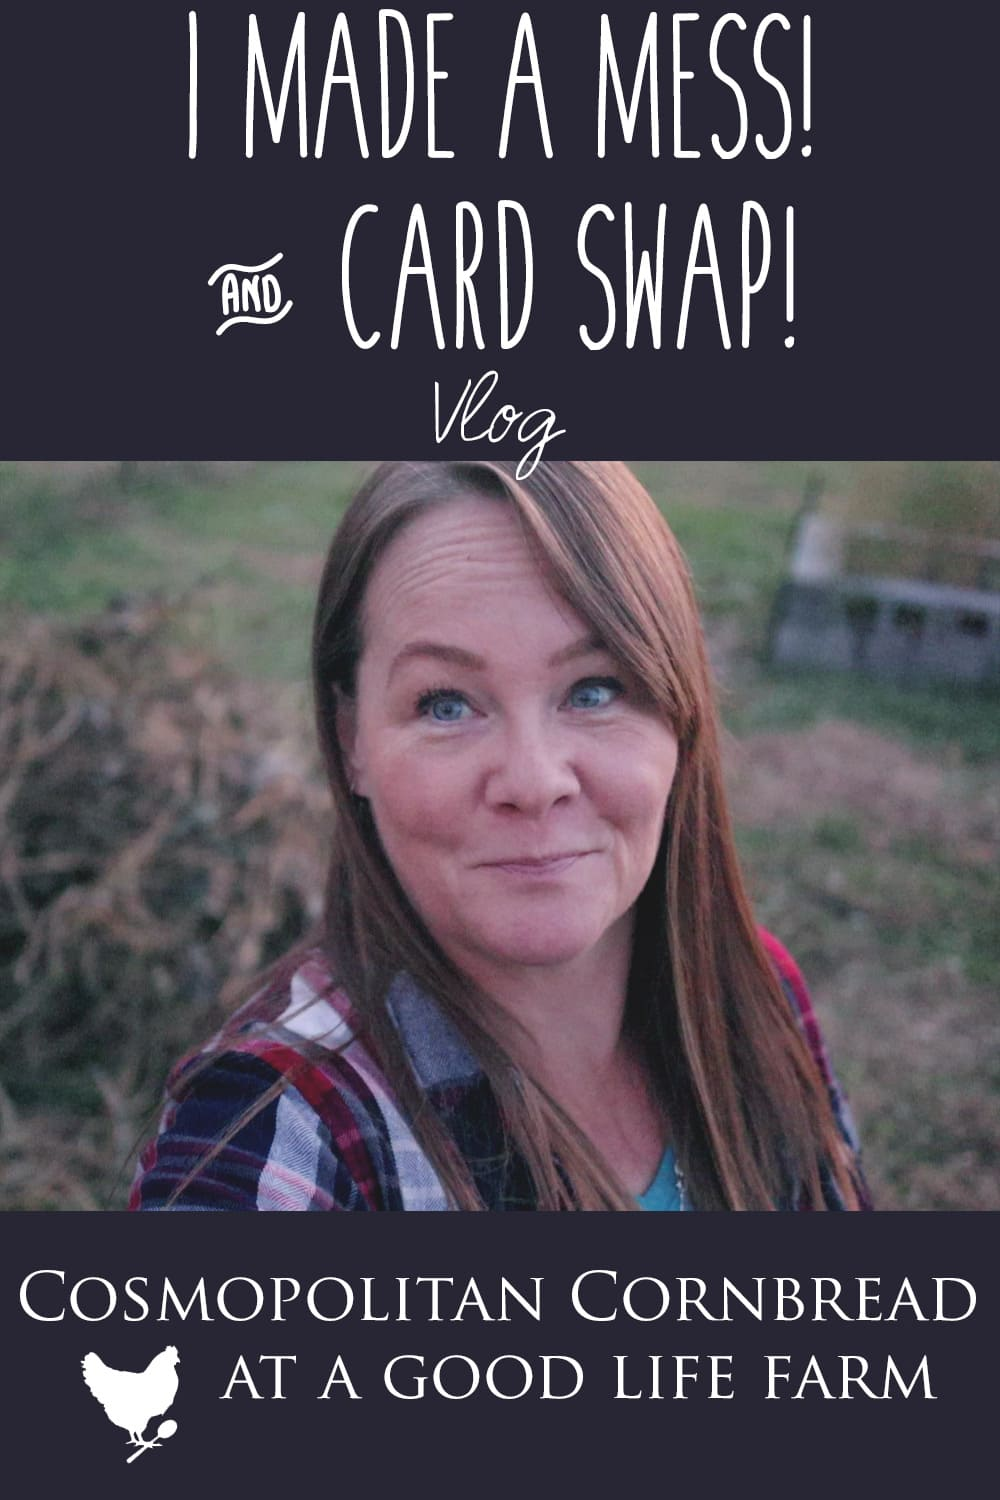 A Big Mess! & Card Swap Announcement